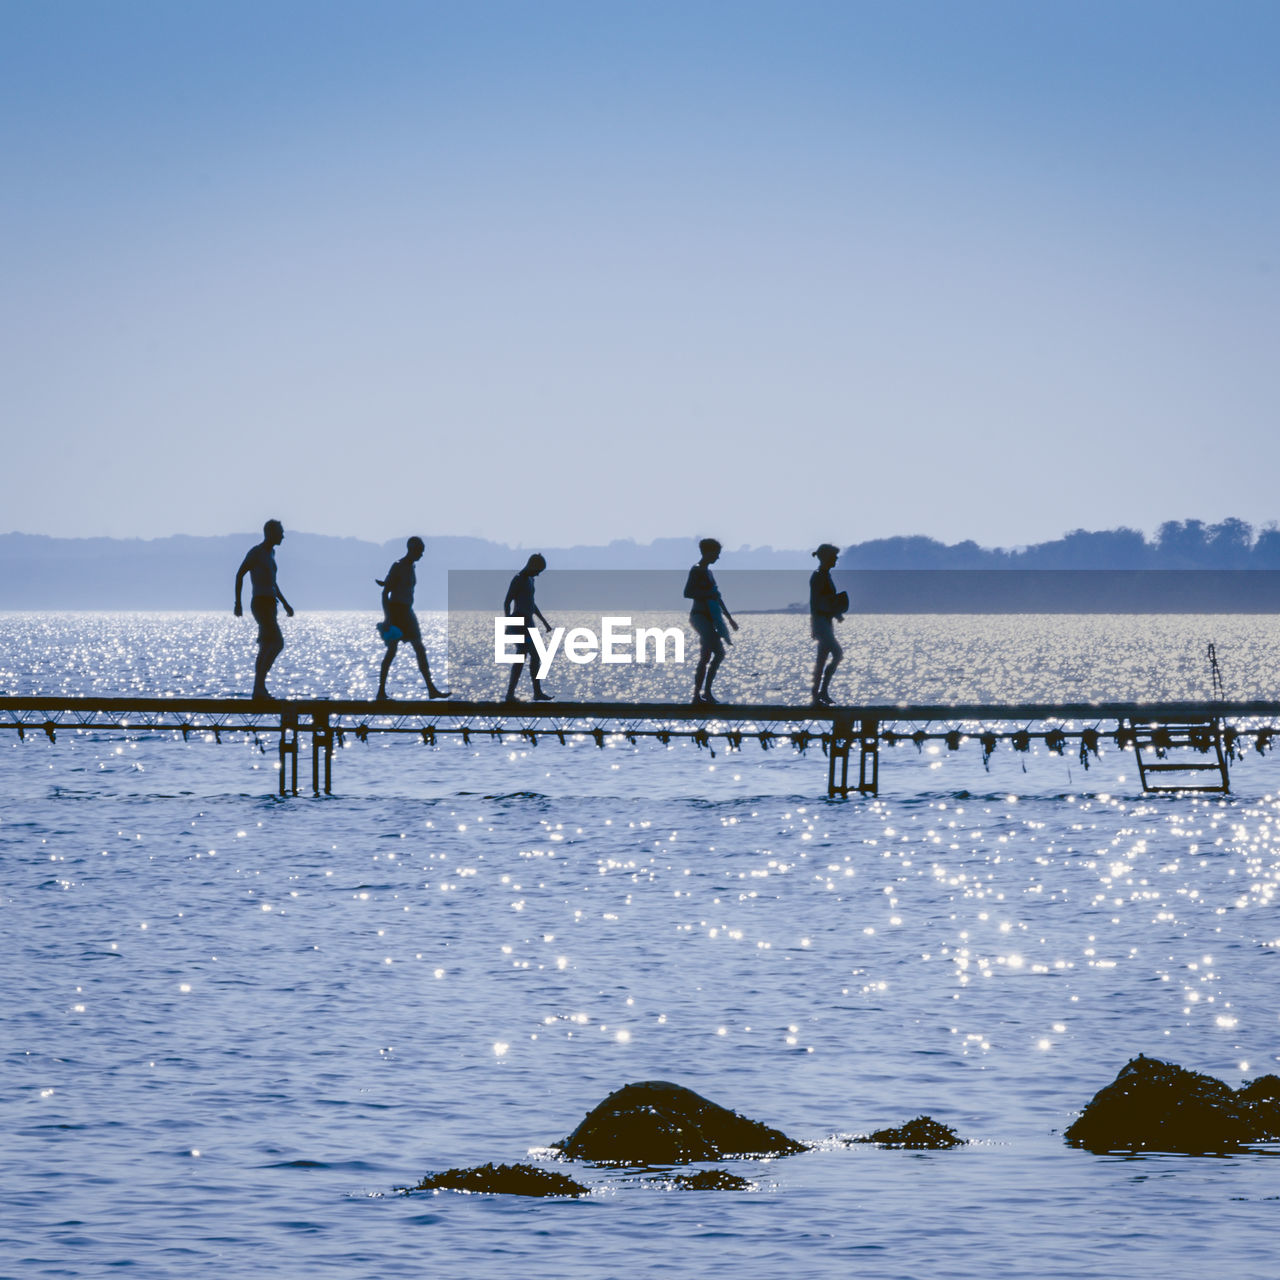 sky, water, real people, group of people, men, clear sky, day, nature, leisure activity, lifestyles, sea, beauty in nature, scenics - nature, copy space, people, sport, land, medium group of people, outdoors